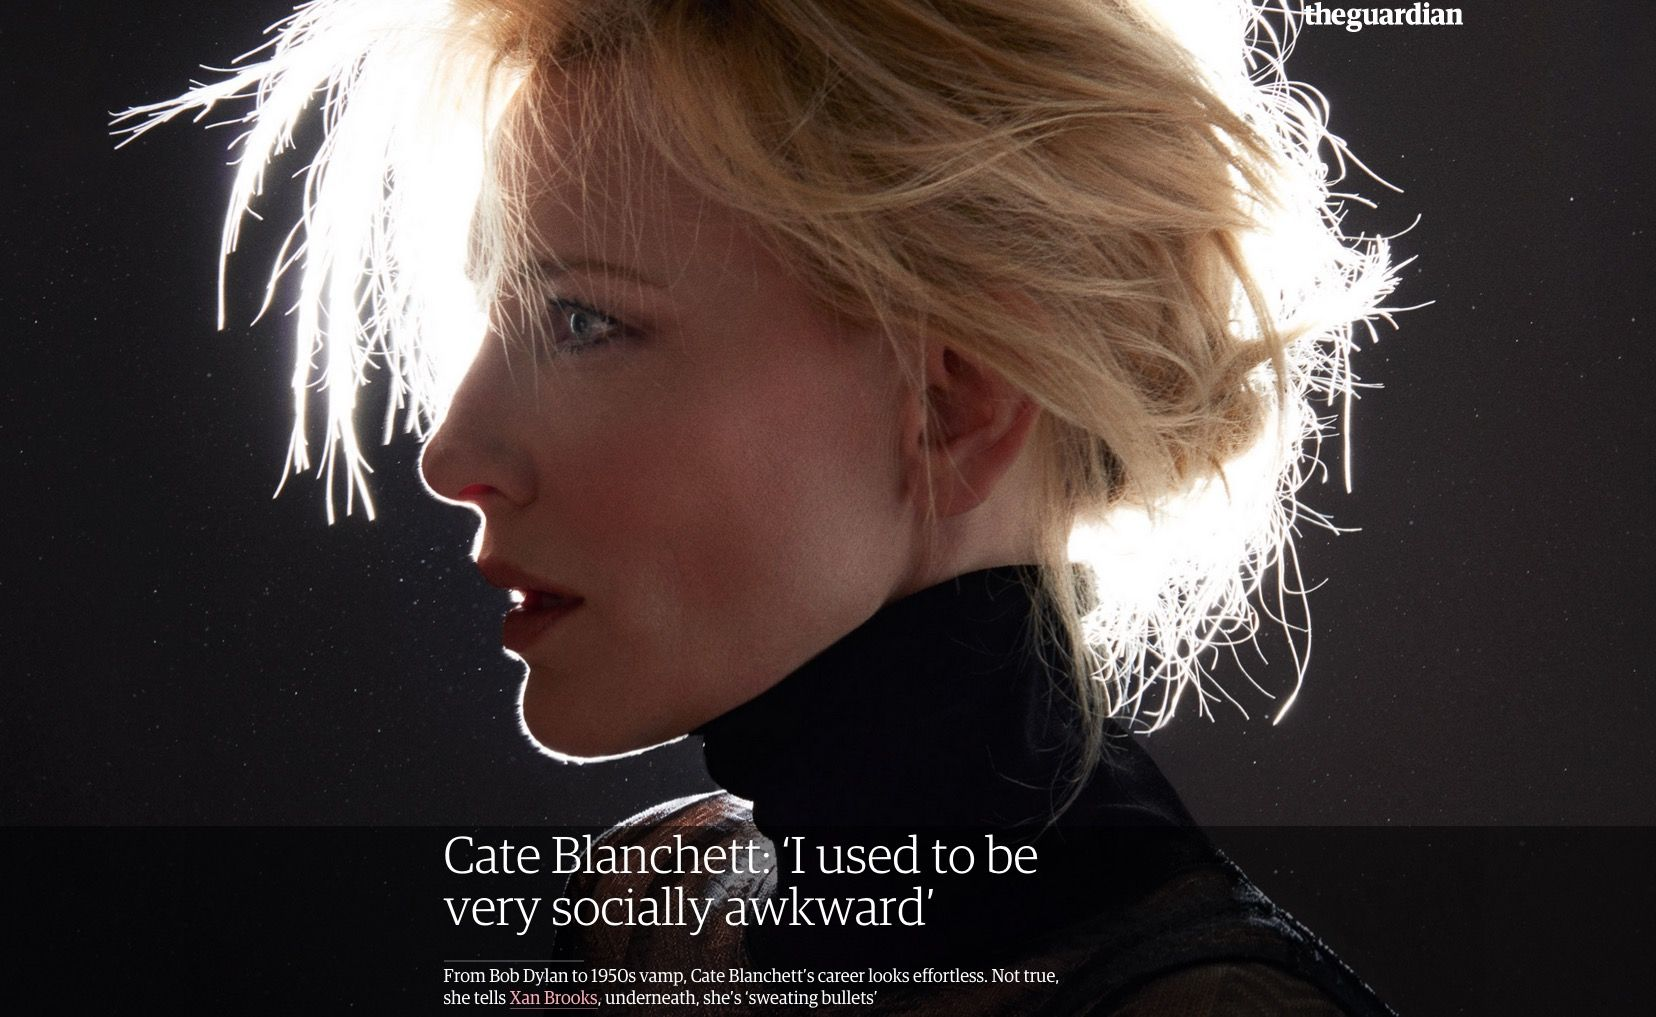 Cate Blanchett  #longread #front #cover #titlepage #feature #scroller #CMS #template #editorial #GuardianUK #photography